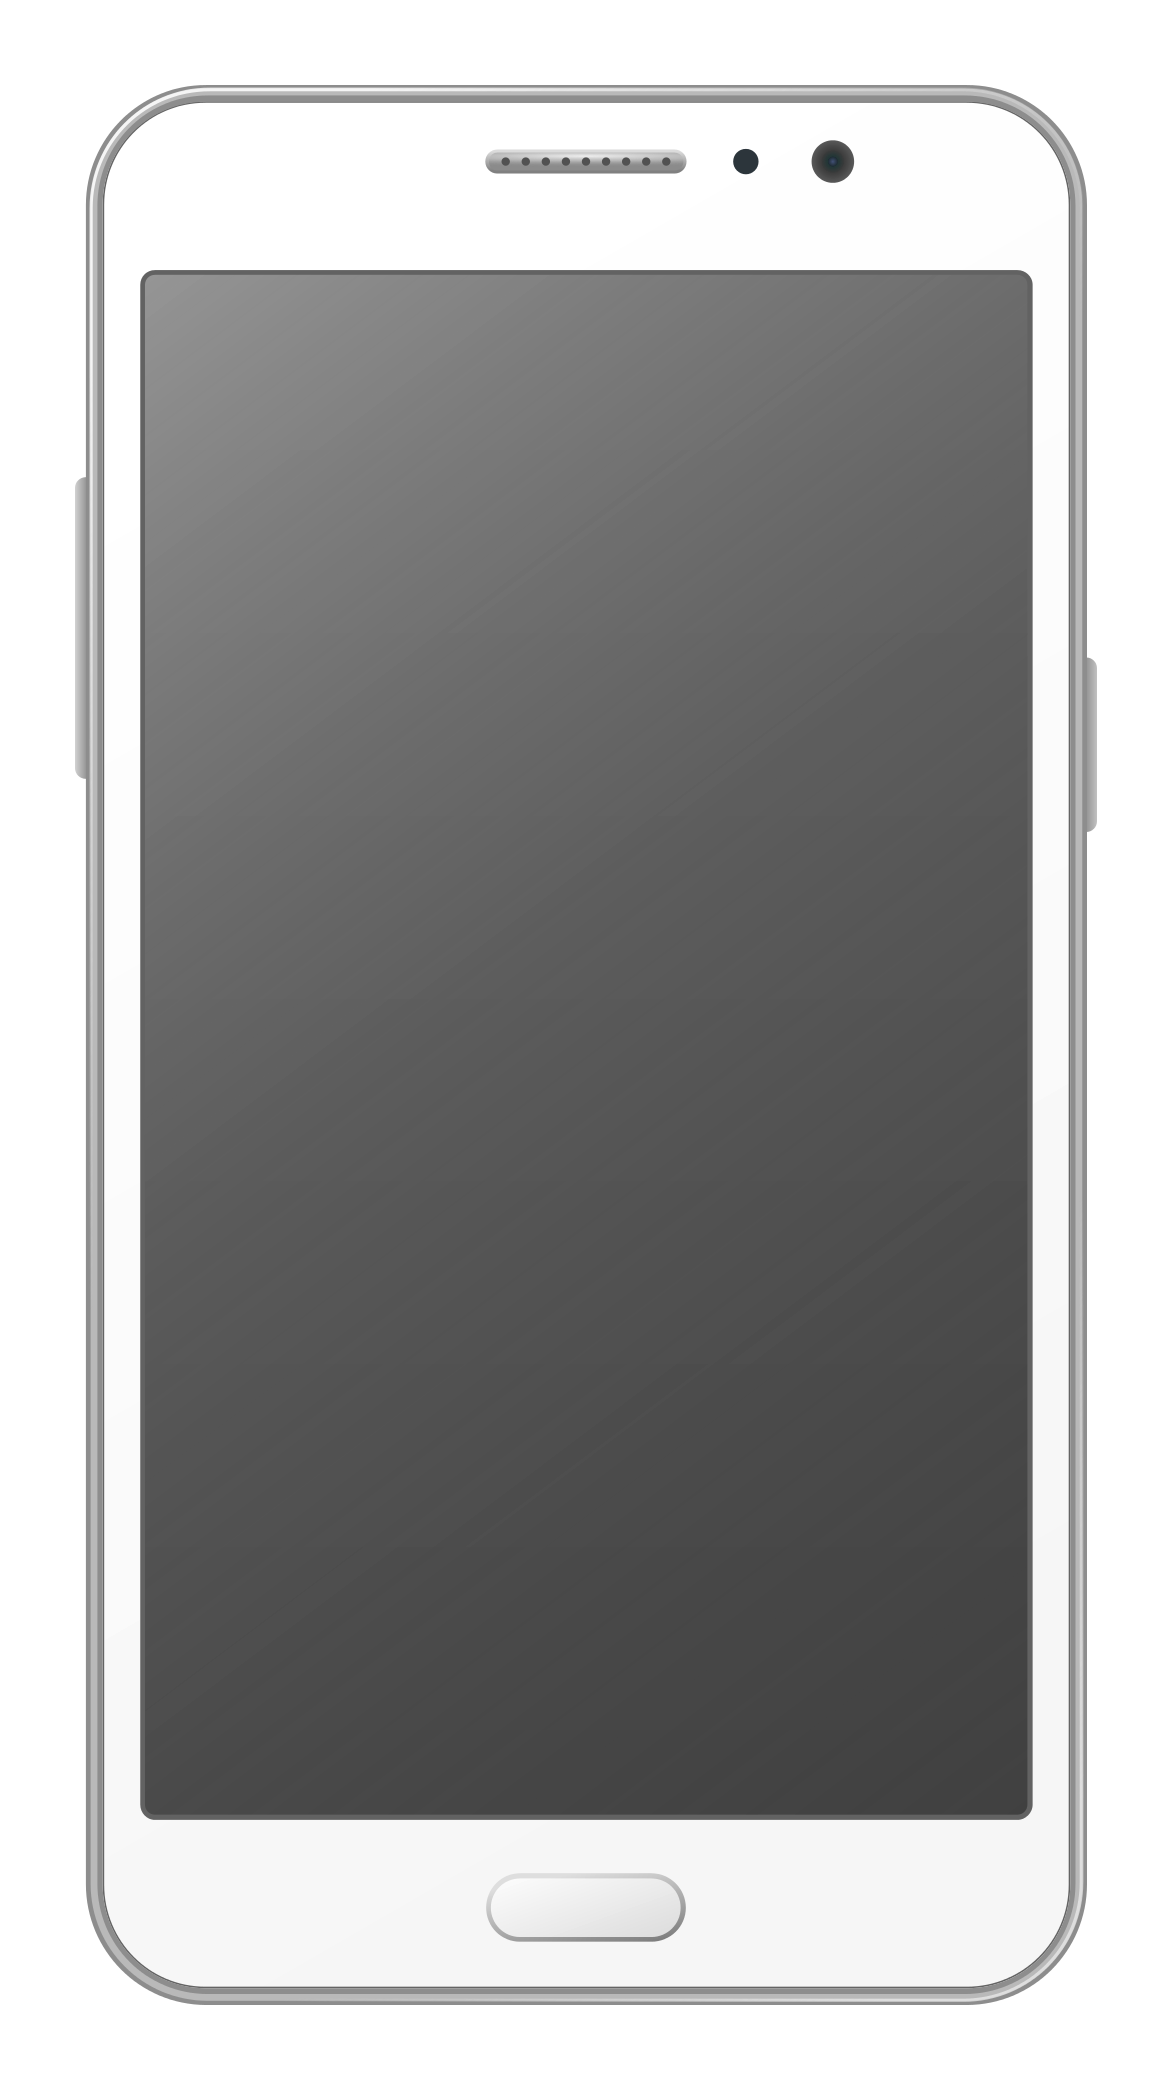 smartphone vector mobile png transparent image #9807